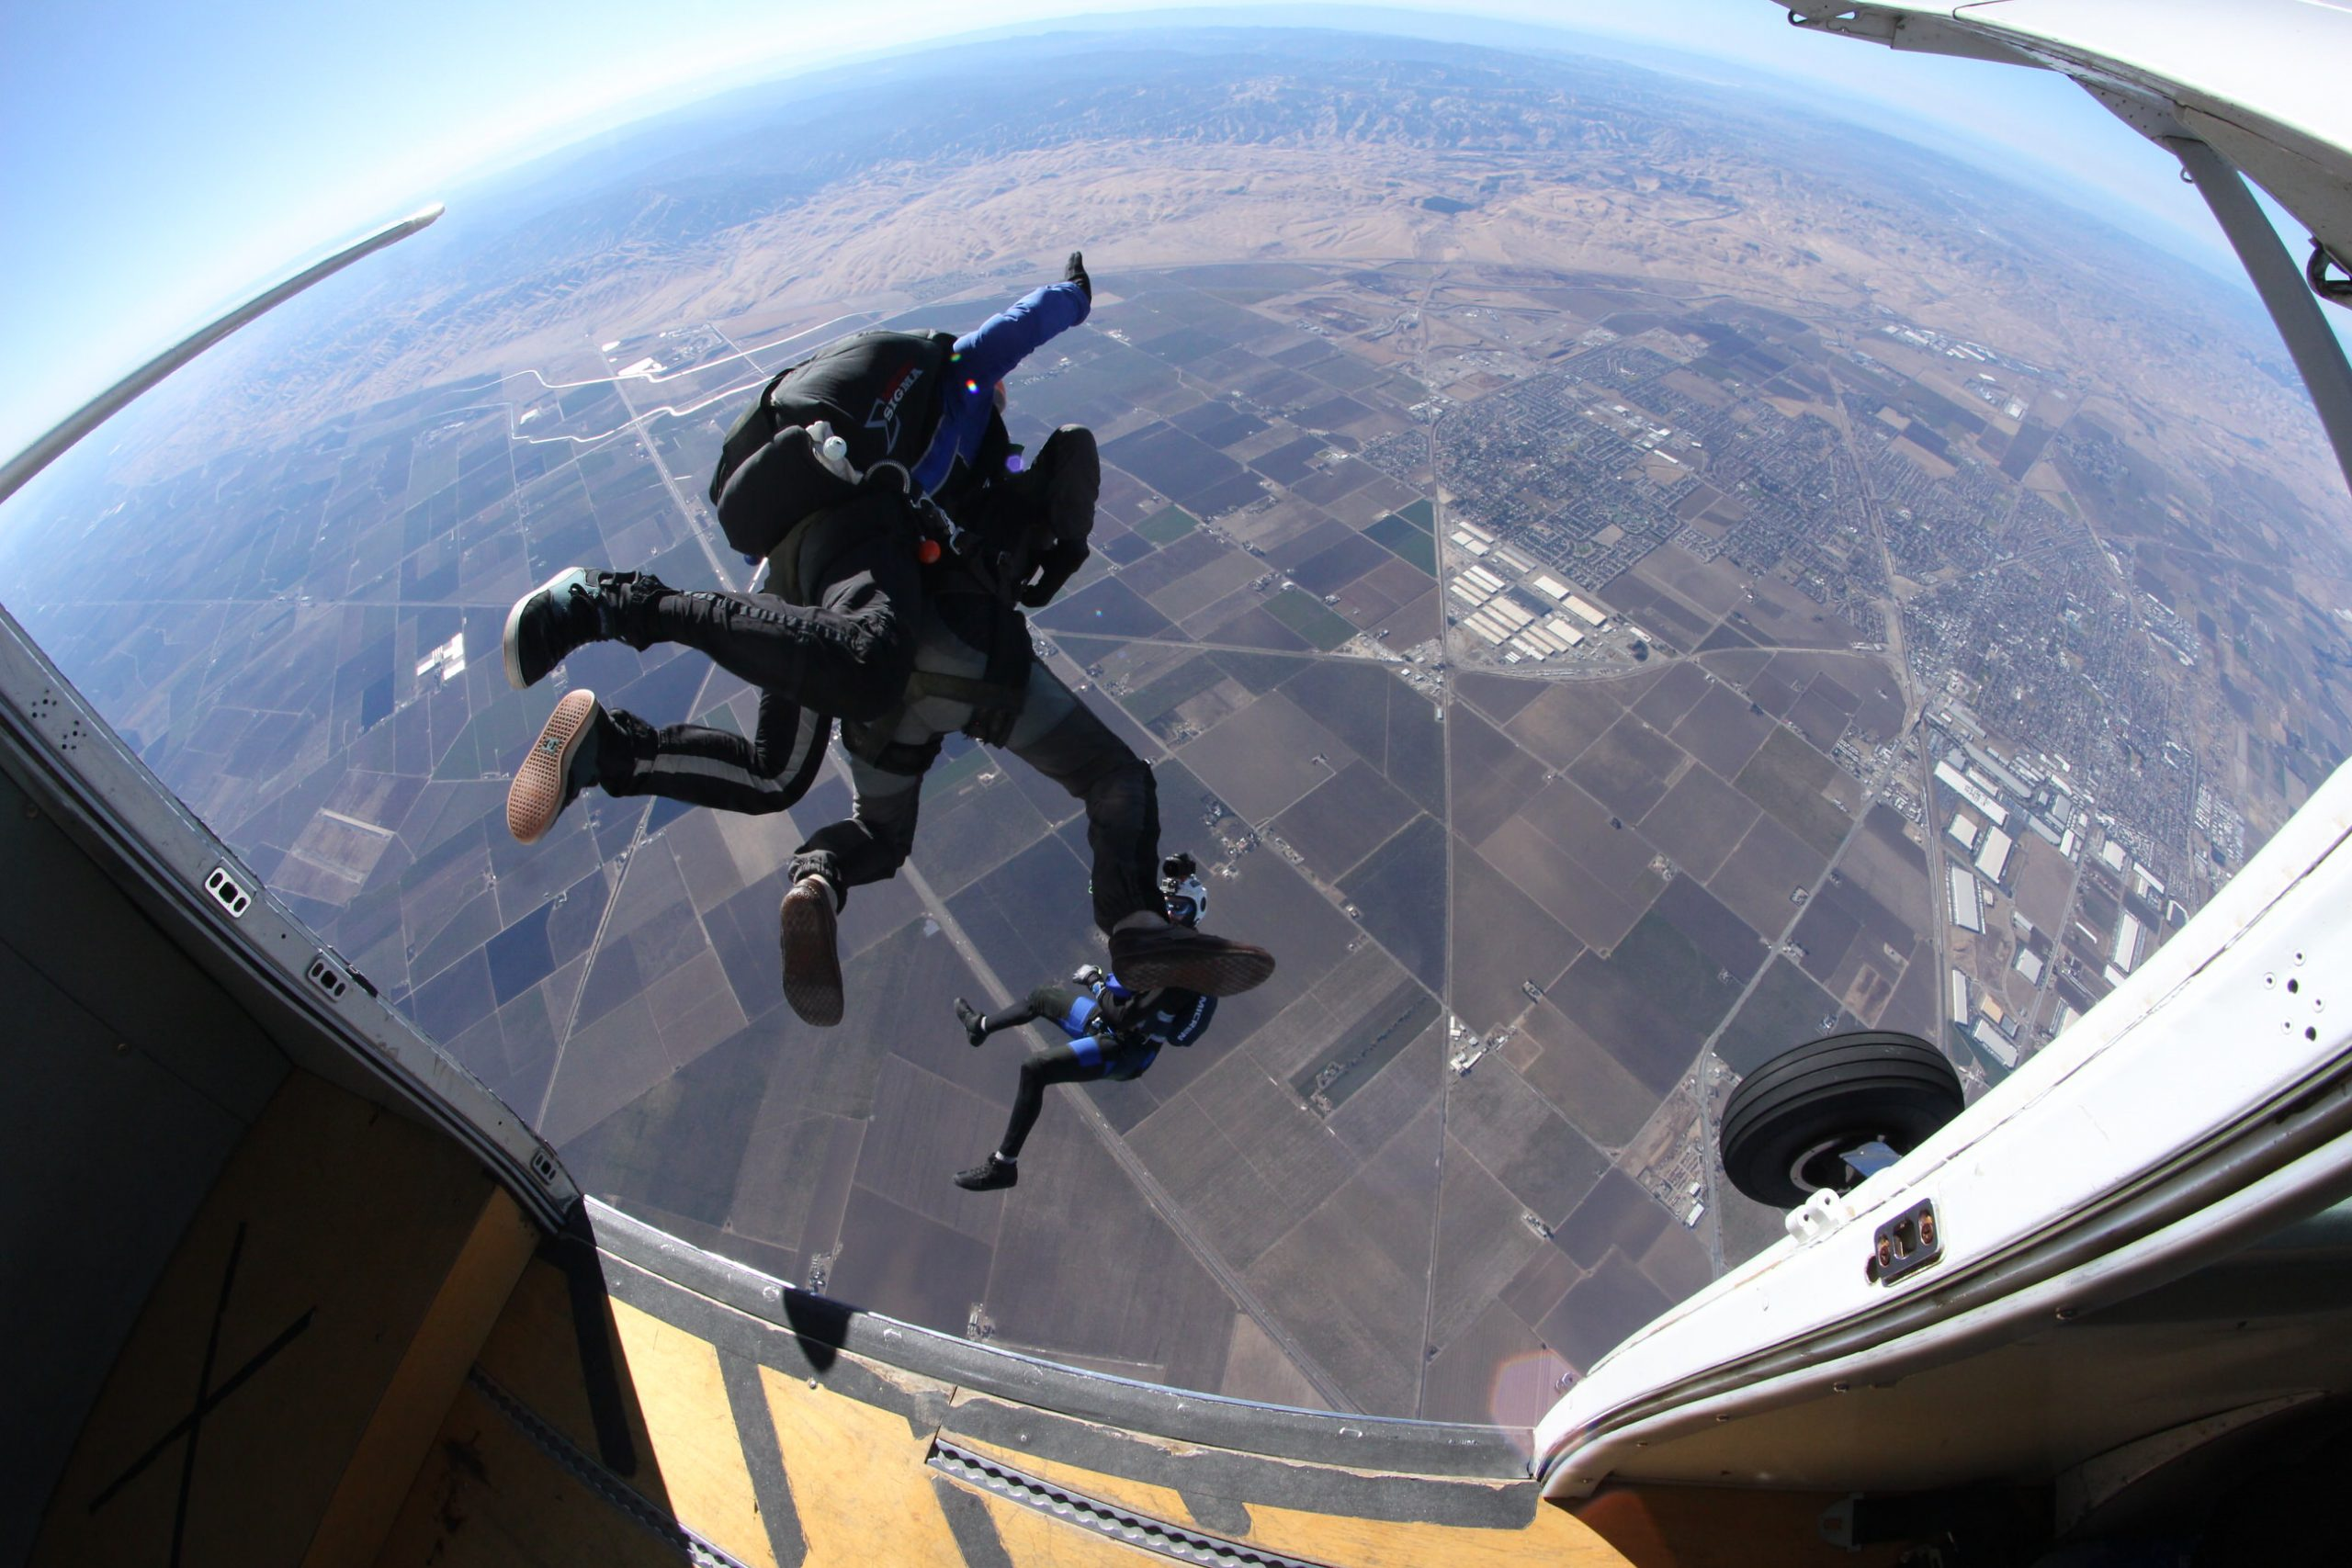 first time tandem skydiving tips fear of heights